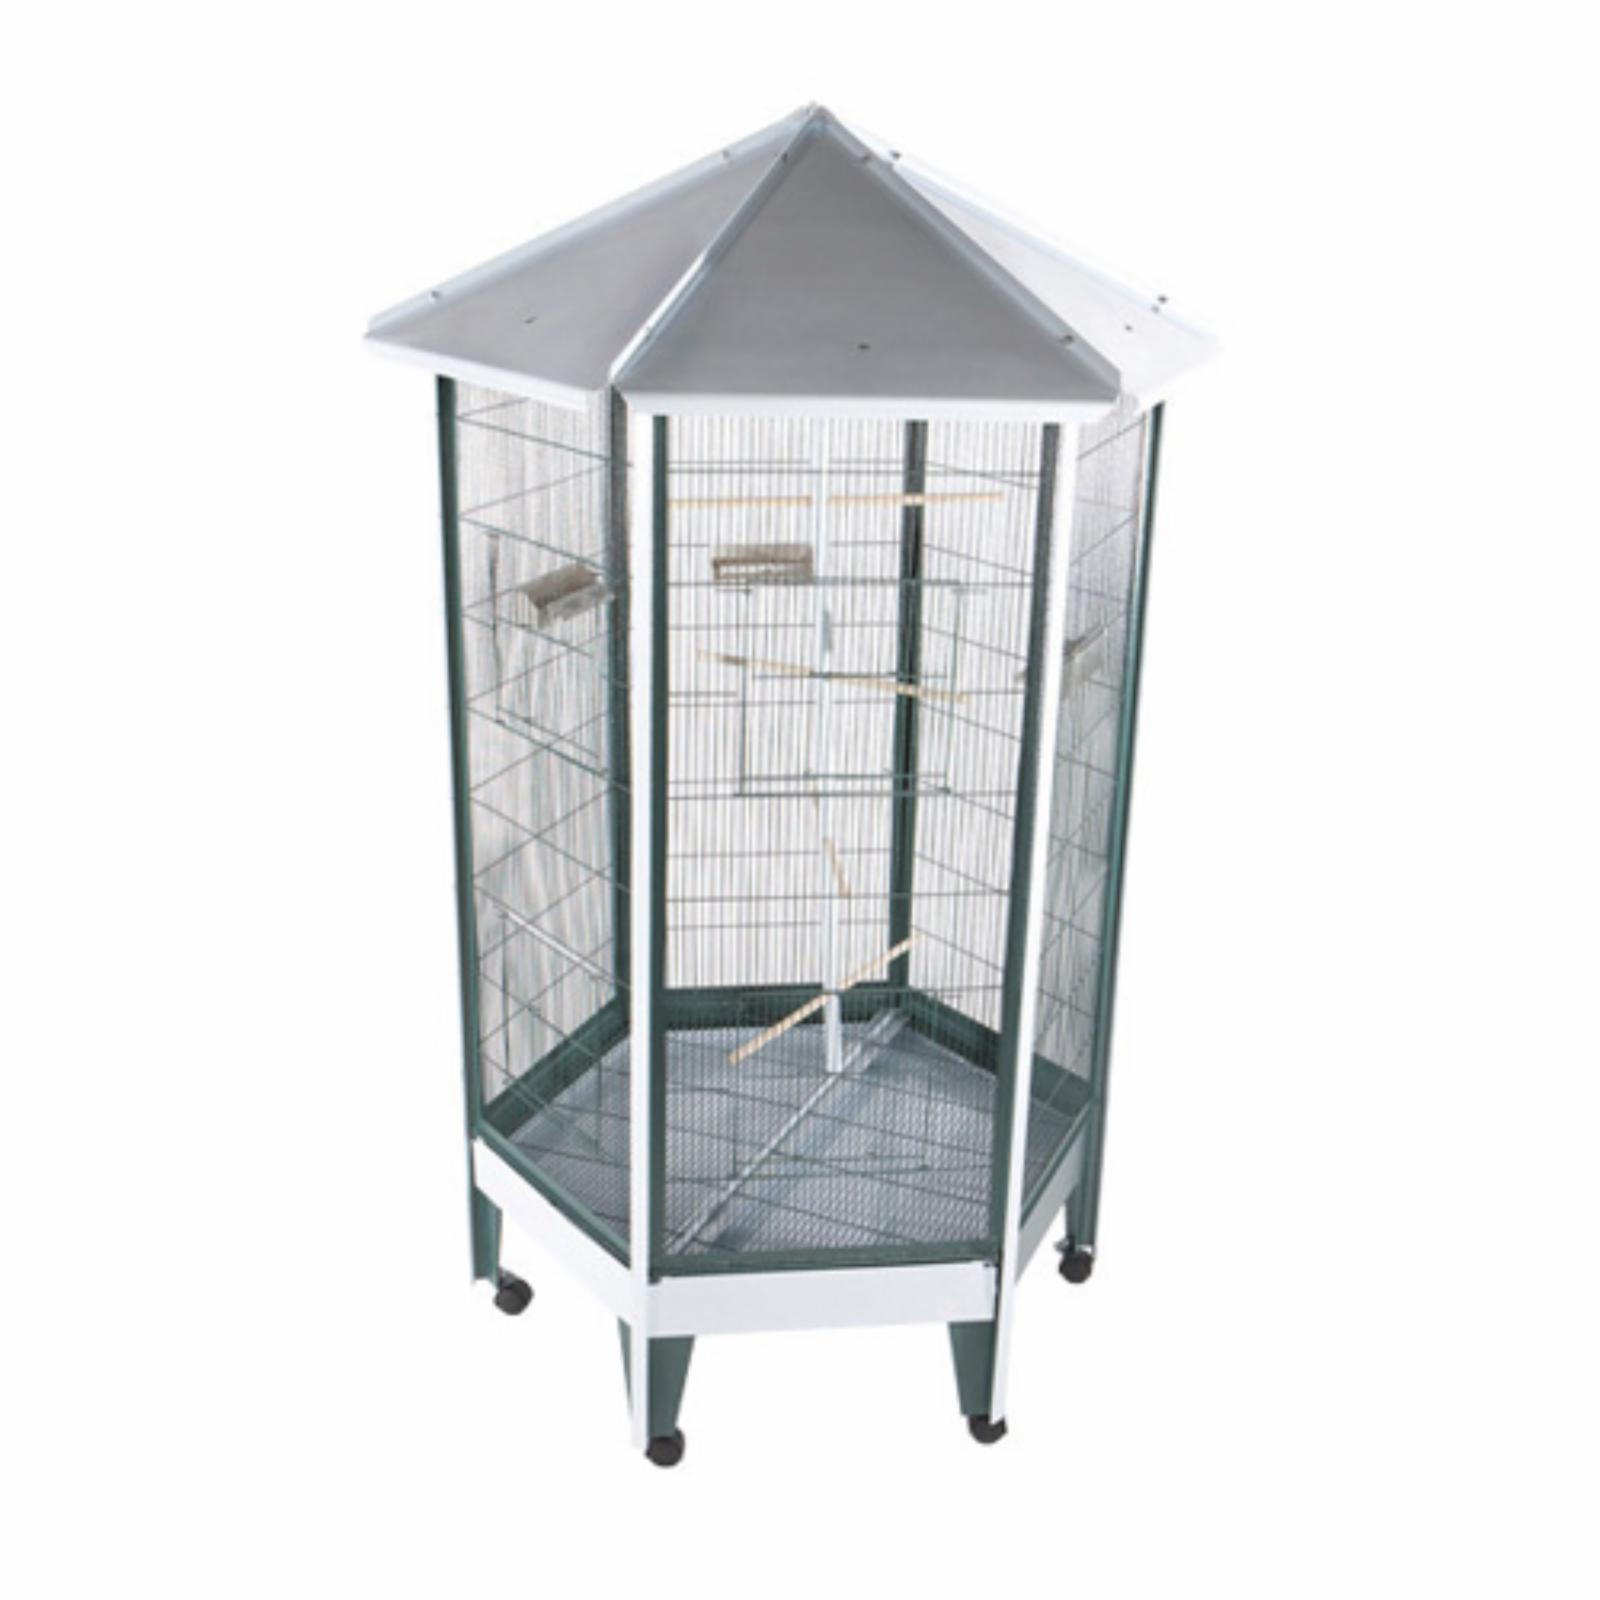 A and E Cage Co. Pitched Roof Hexagon Aviary - 100C1